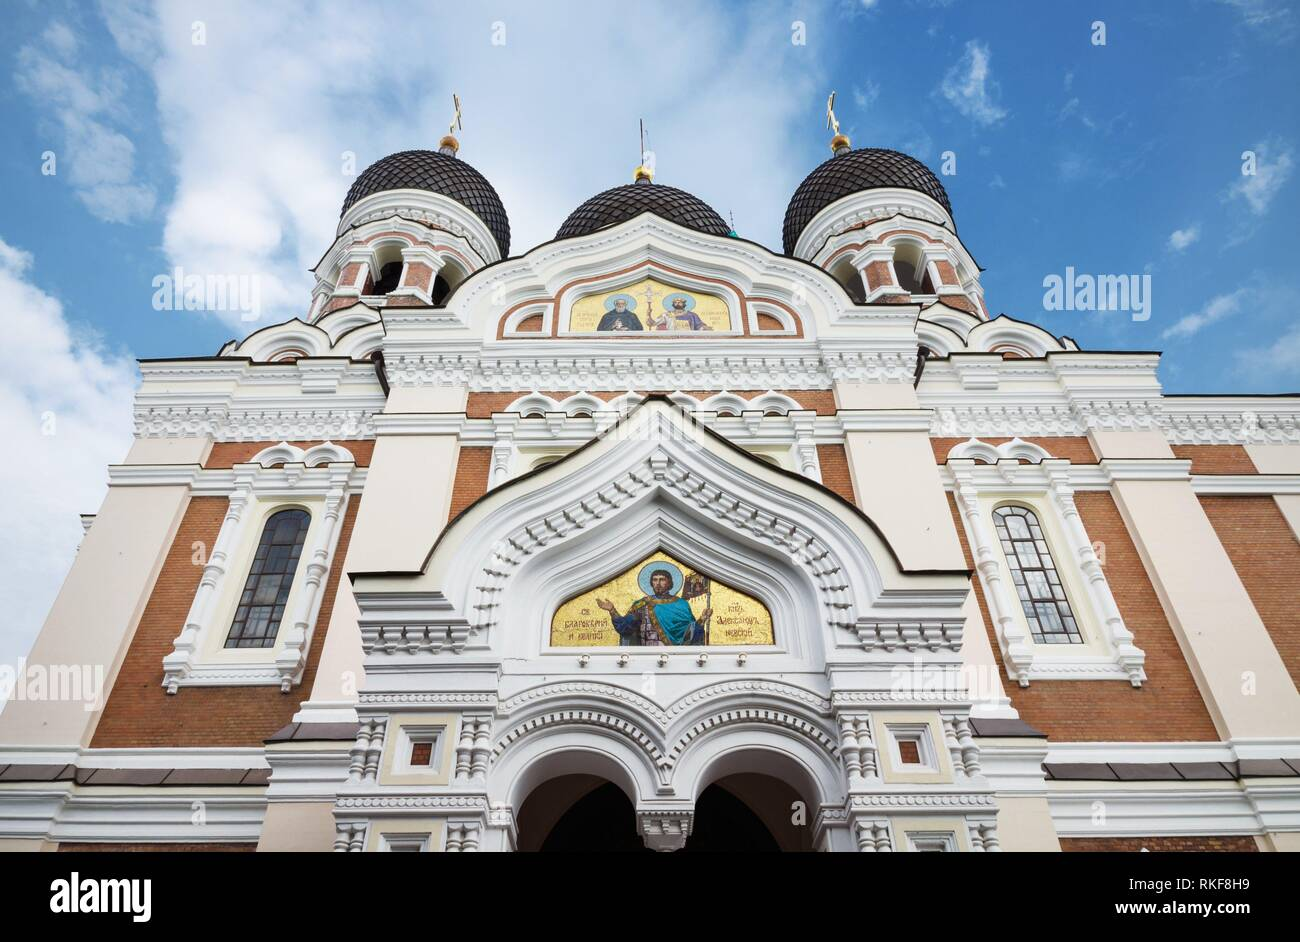 Alexander nevsky cathedral in the medieval city of Tallinn, Estonia. Stock Photo